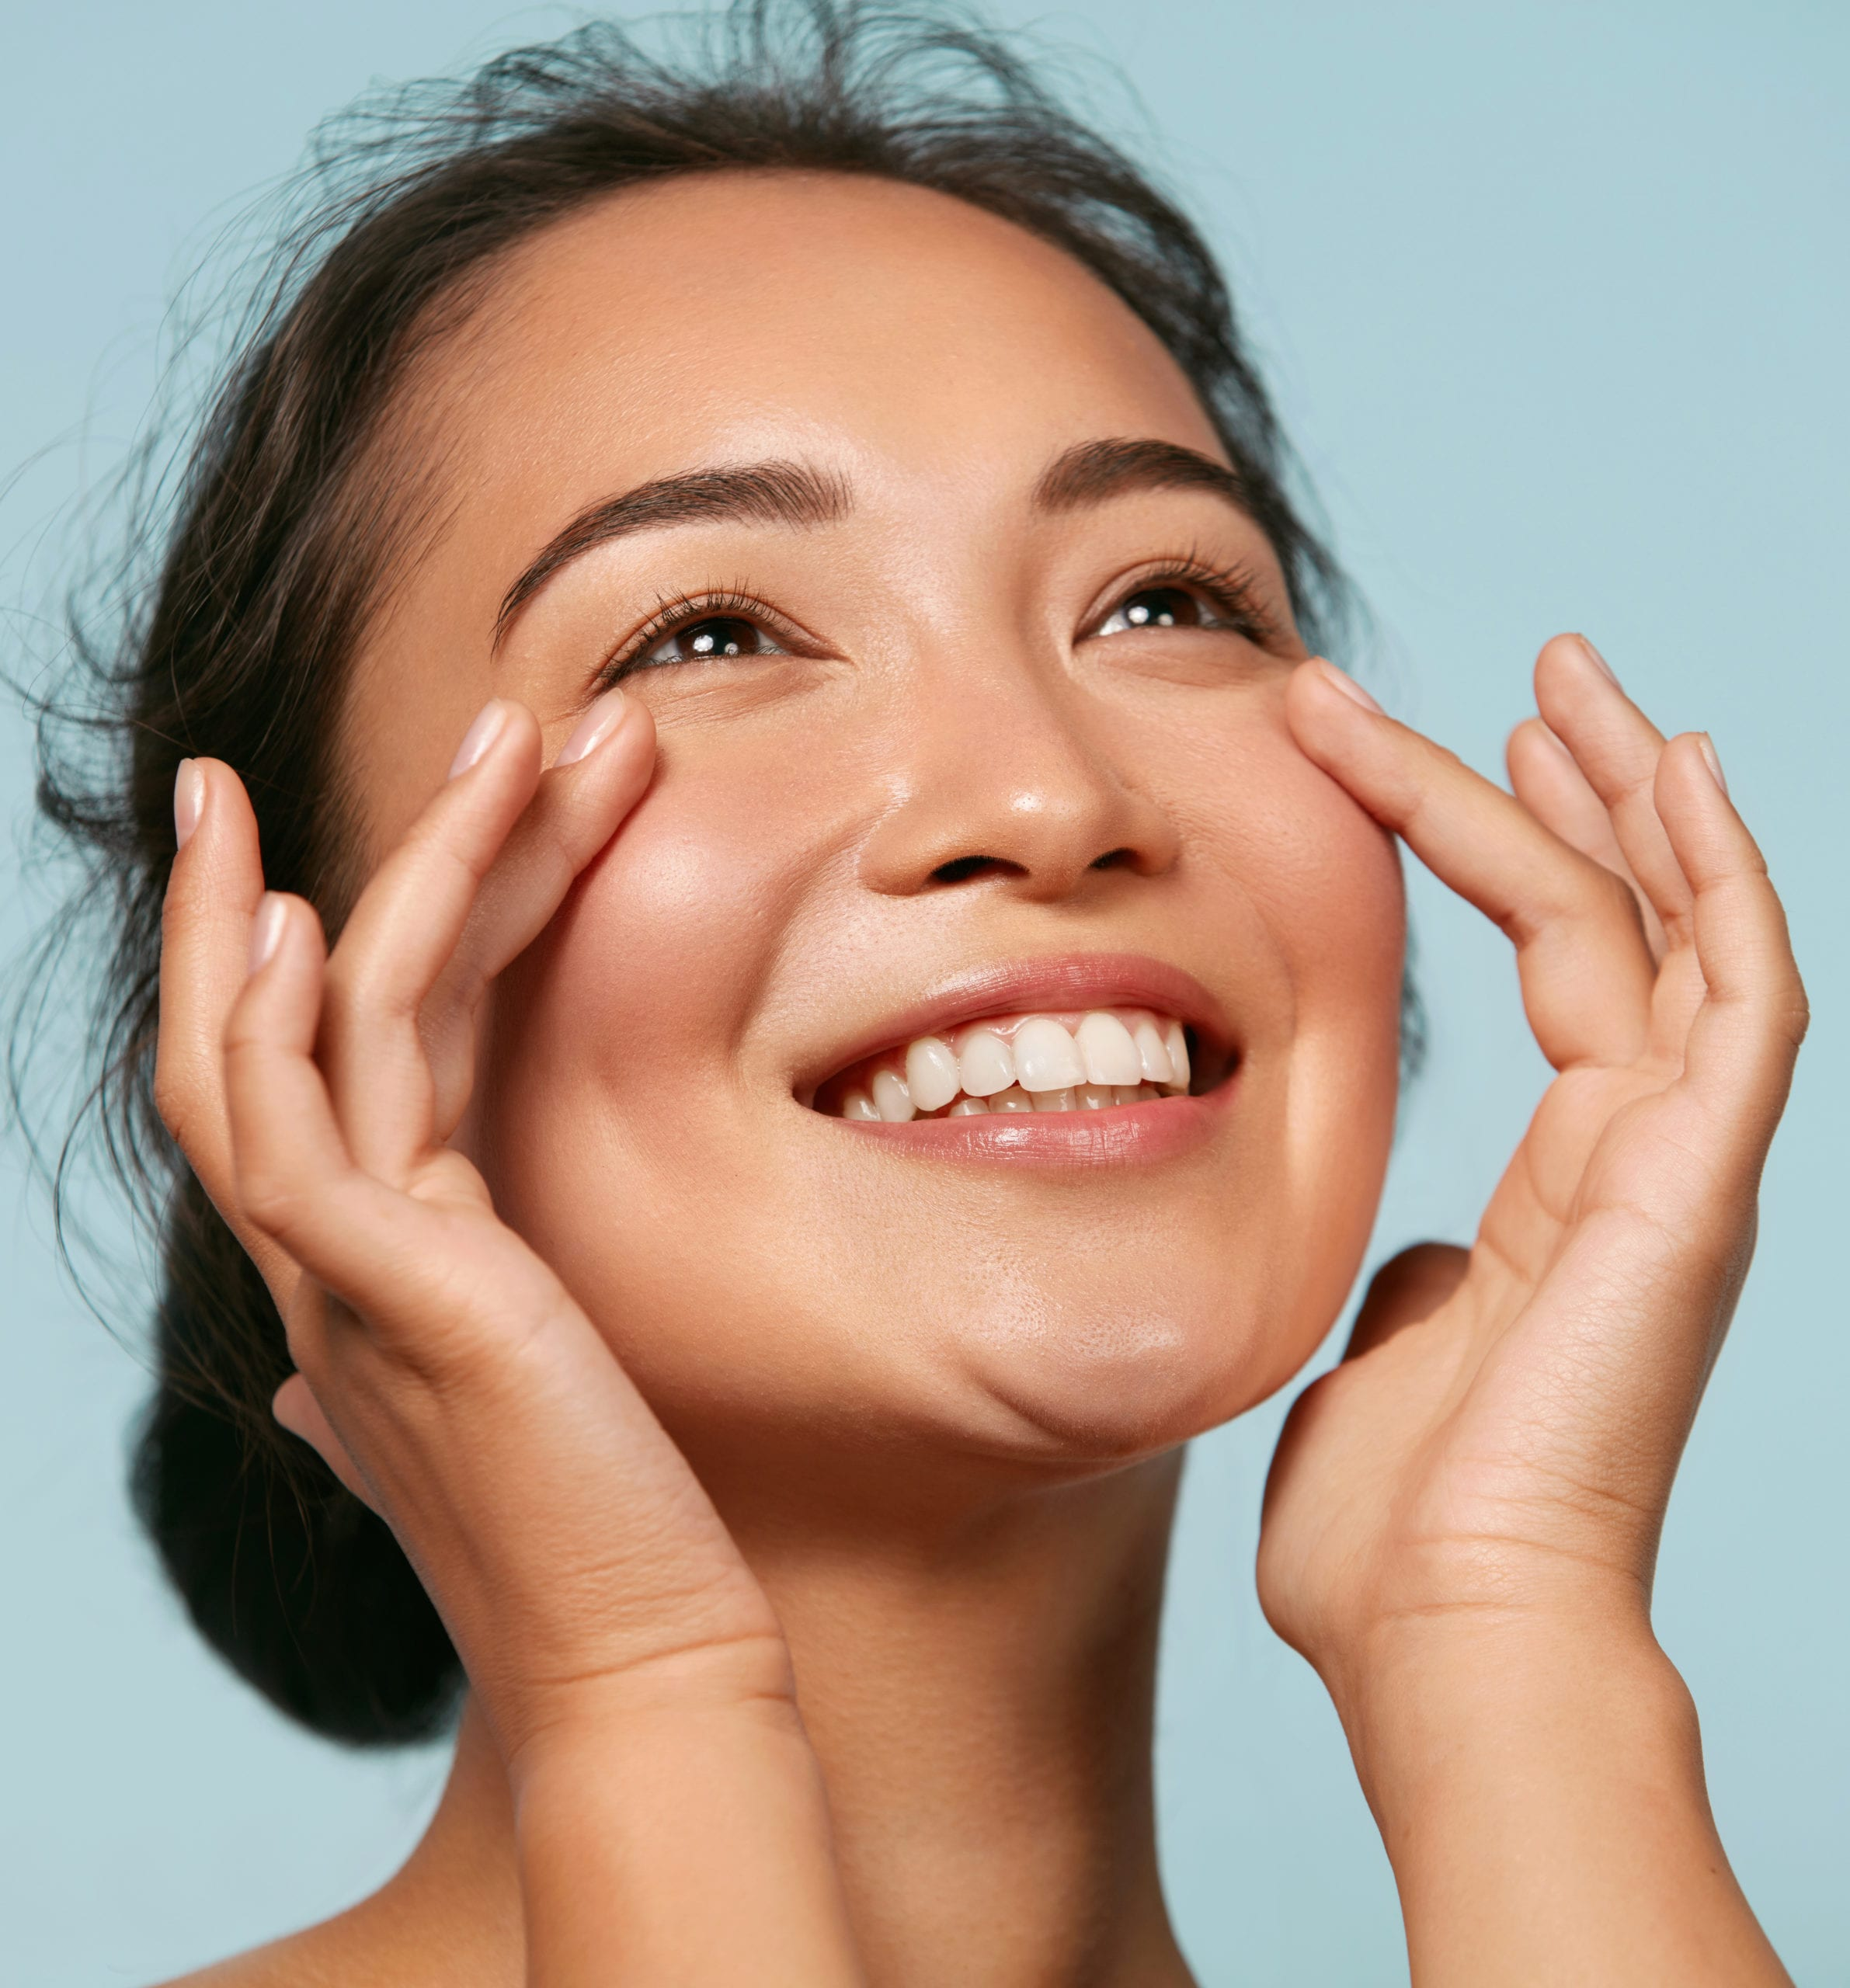 SKINtastic monthly memberships - managing the cost of your beauty treatments, at Skintastic Cosmetic Surgery and Laser Skin Care Centers in Southlake and Plano.